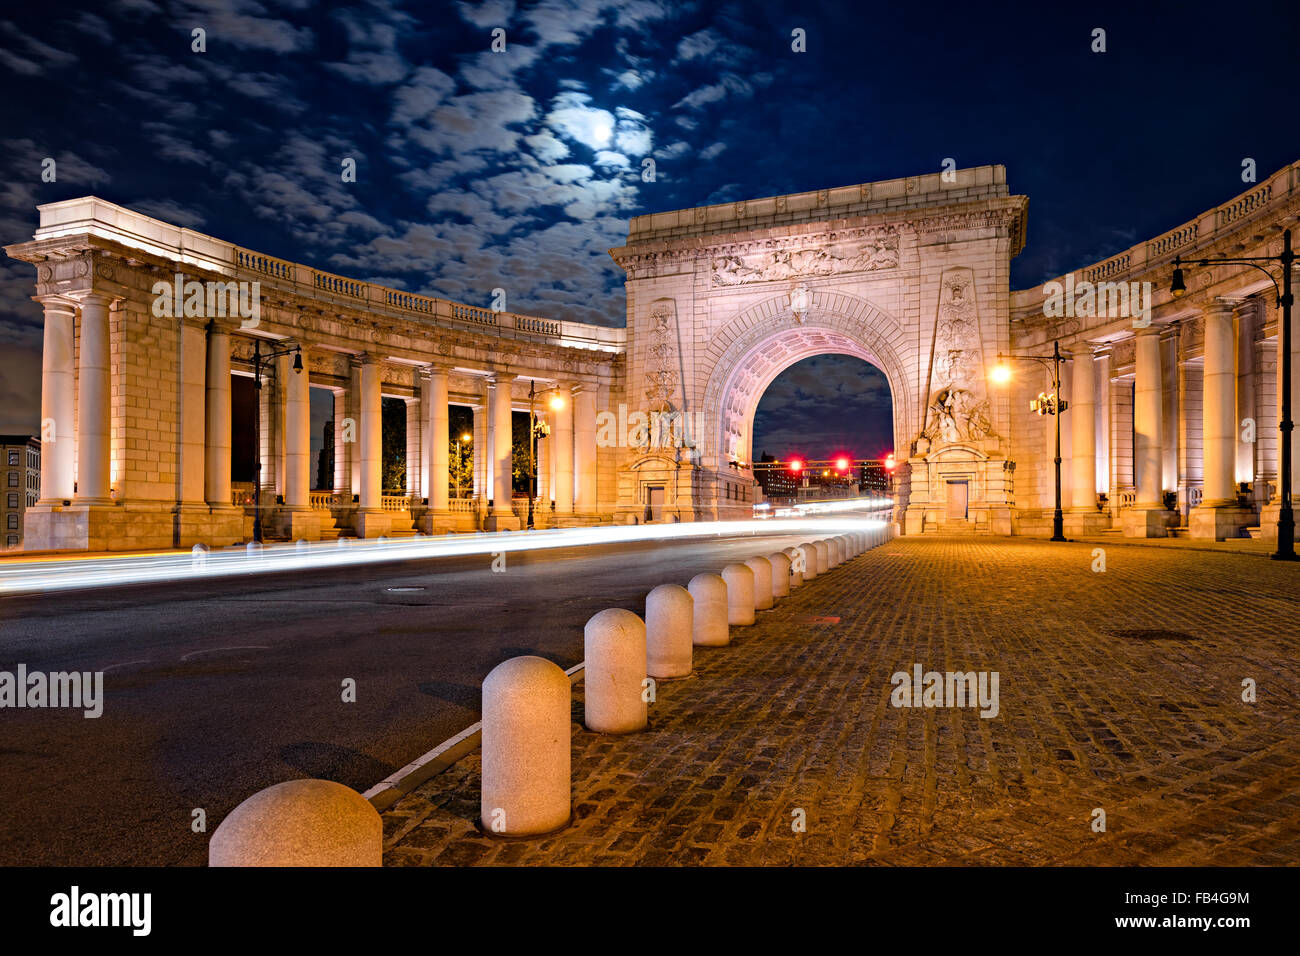 Illuminated Triumphal Arch and Colonnade of Manhattan Bridge Entrance in moonlight, Chinatown, Lower Manhattan, - Stock Image